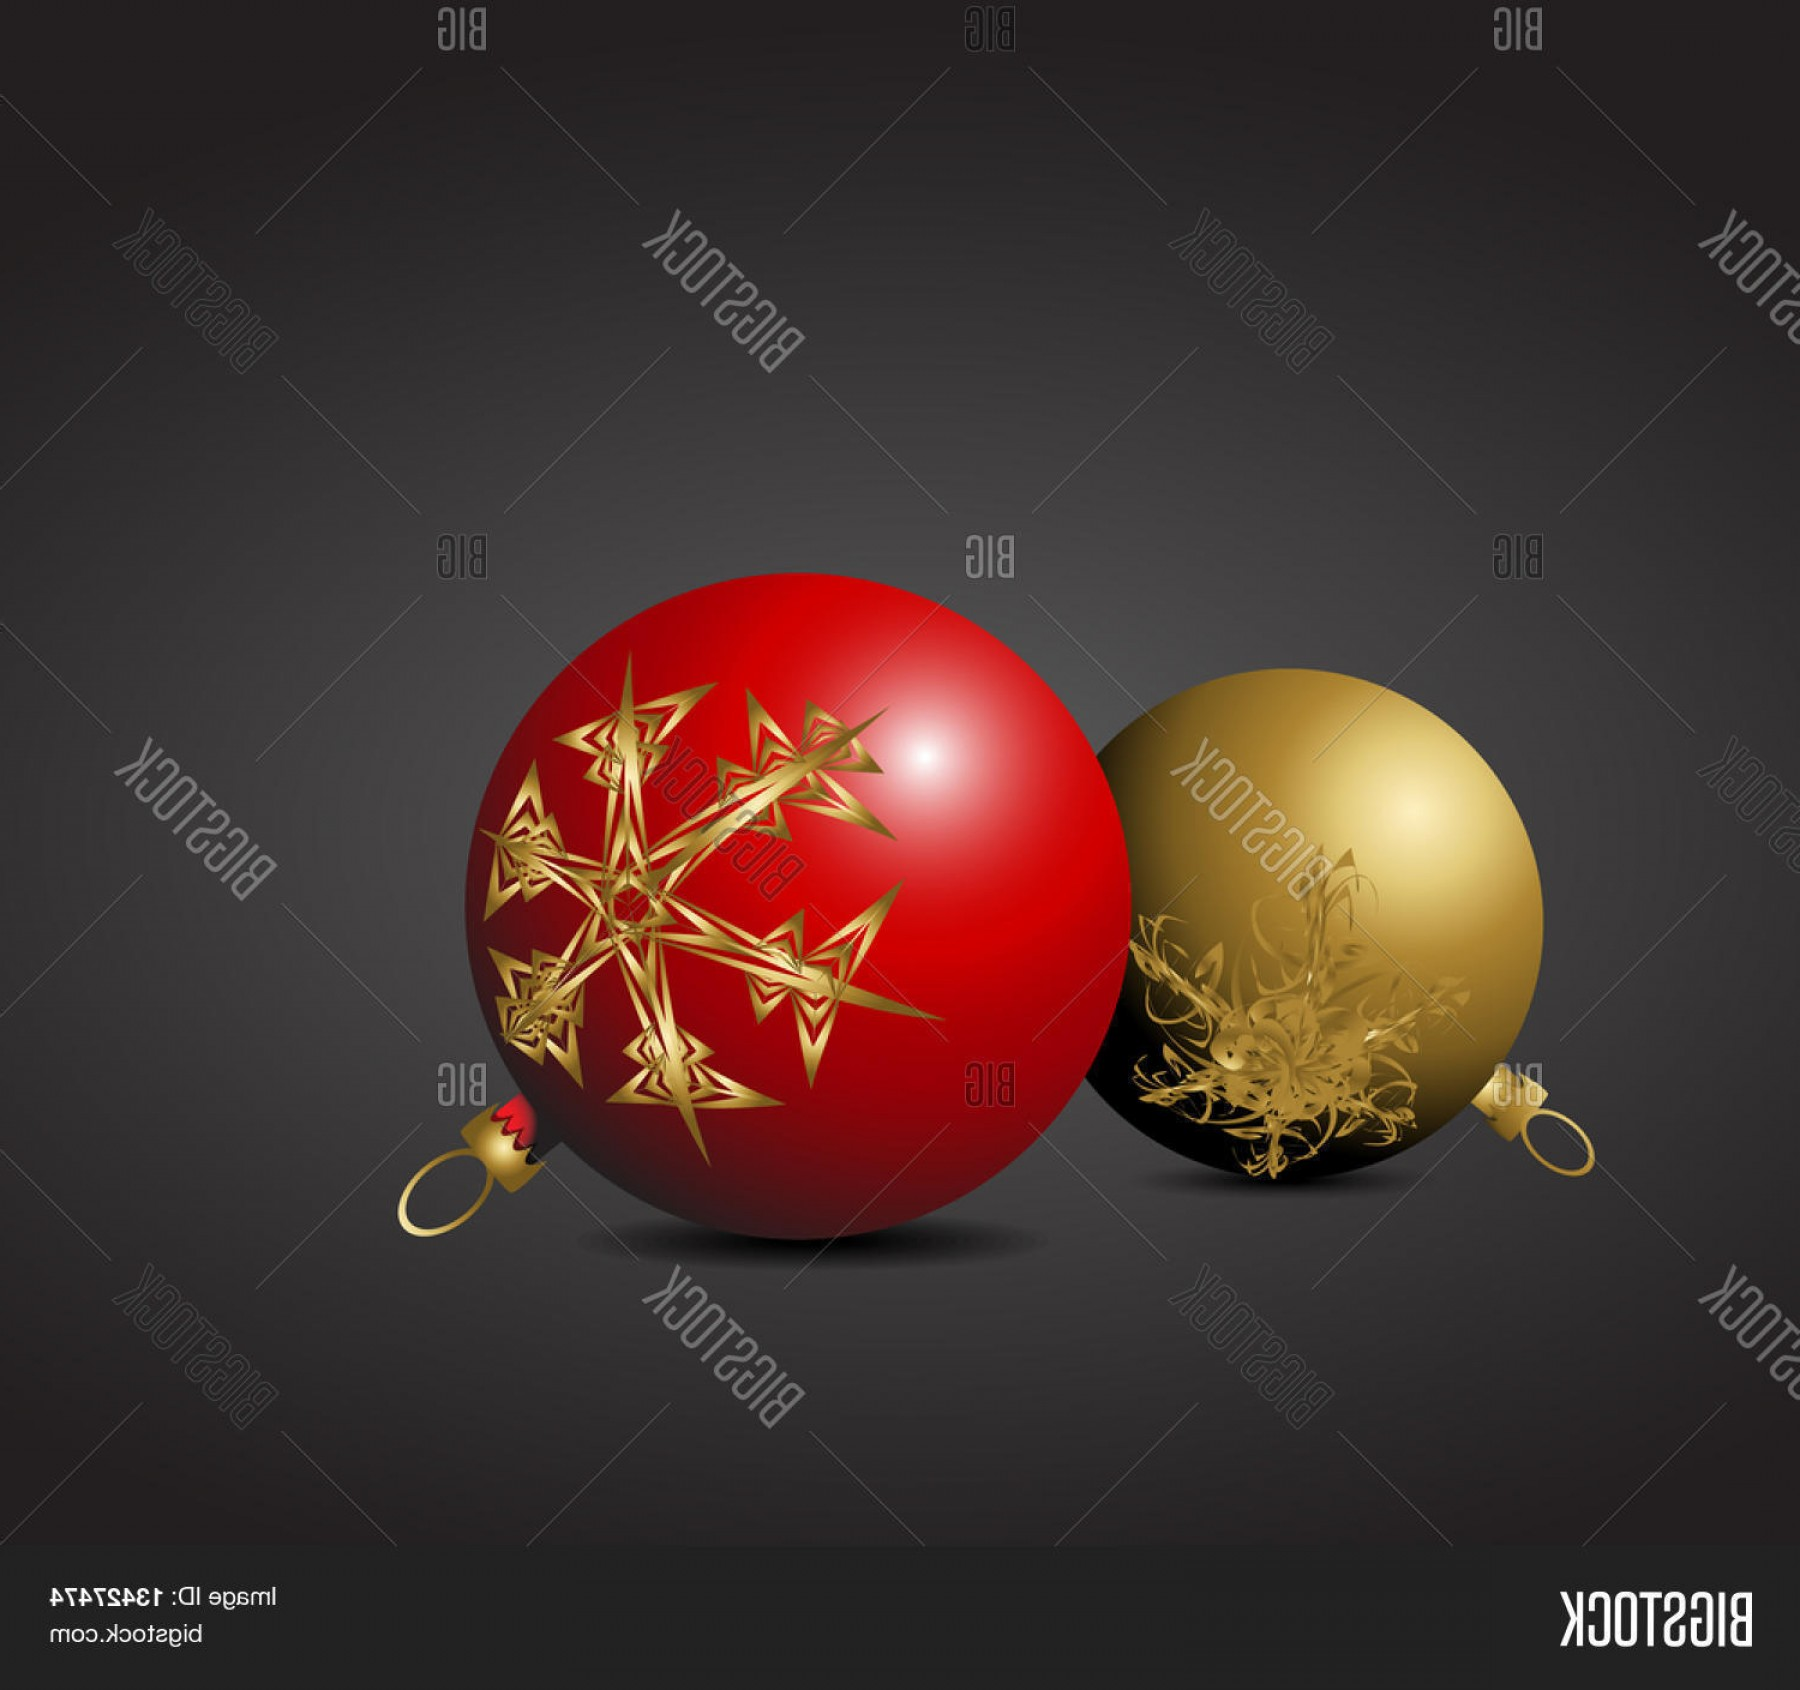 3 Glass Christmas Bulb Vector: Stock Vector Red And Golden Christmas Bulbs With Snowflakes Ornaments